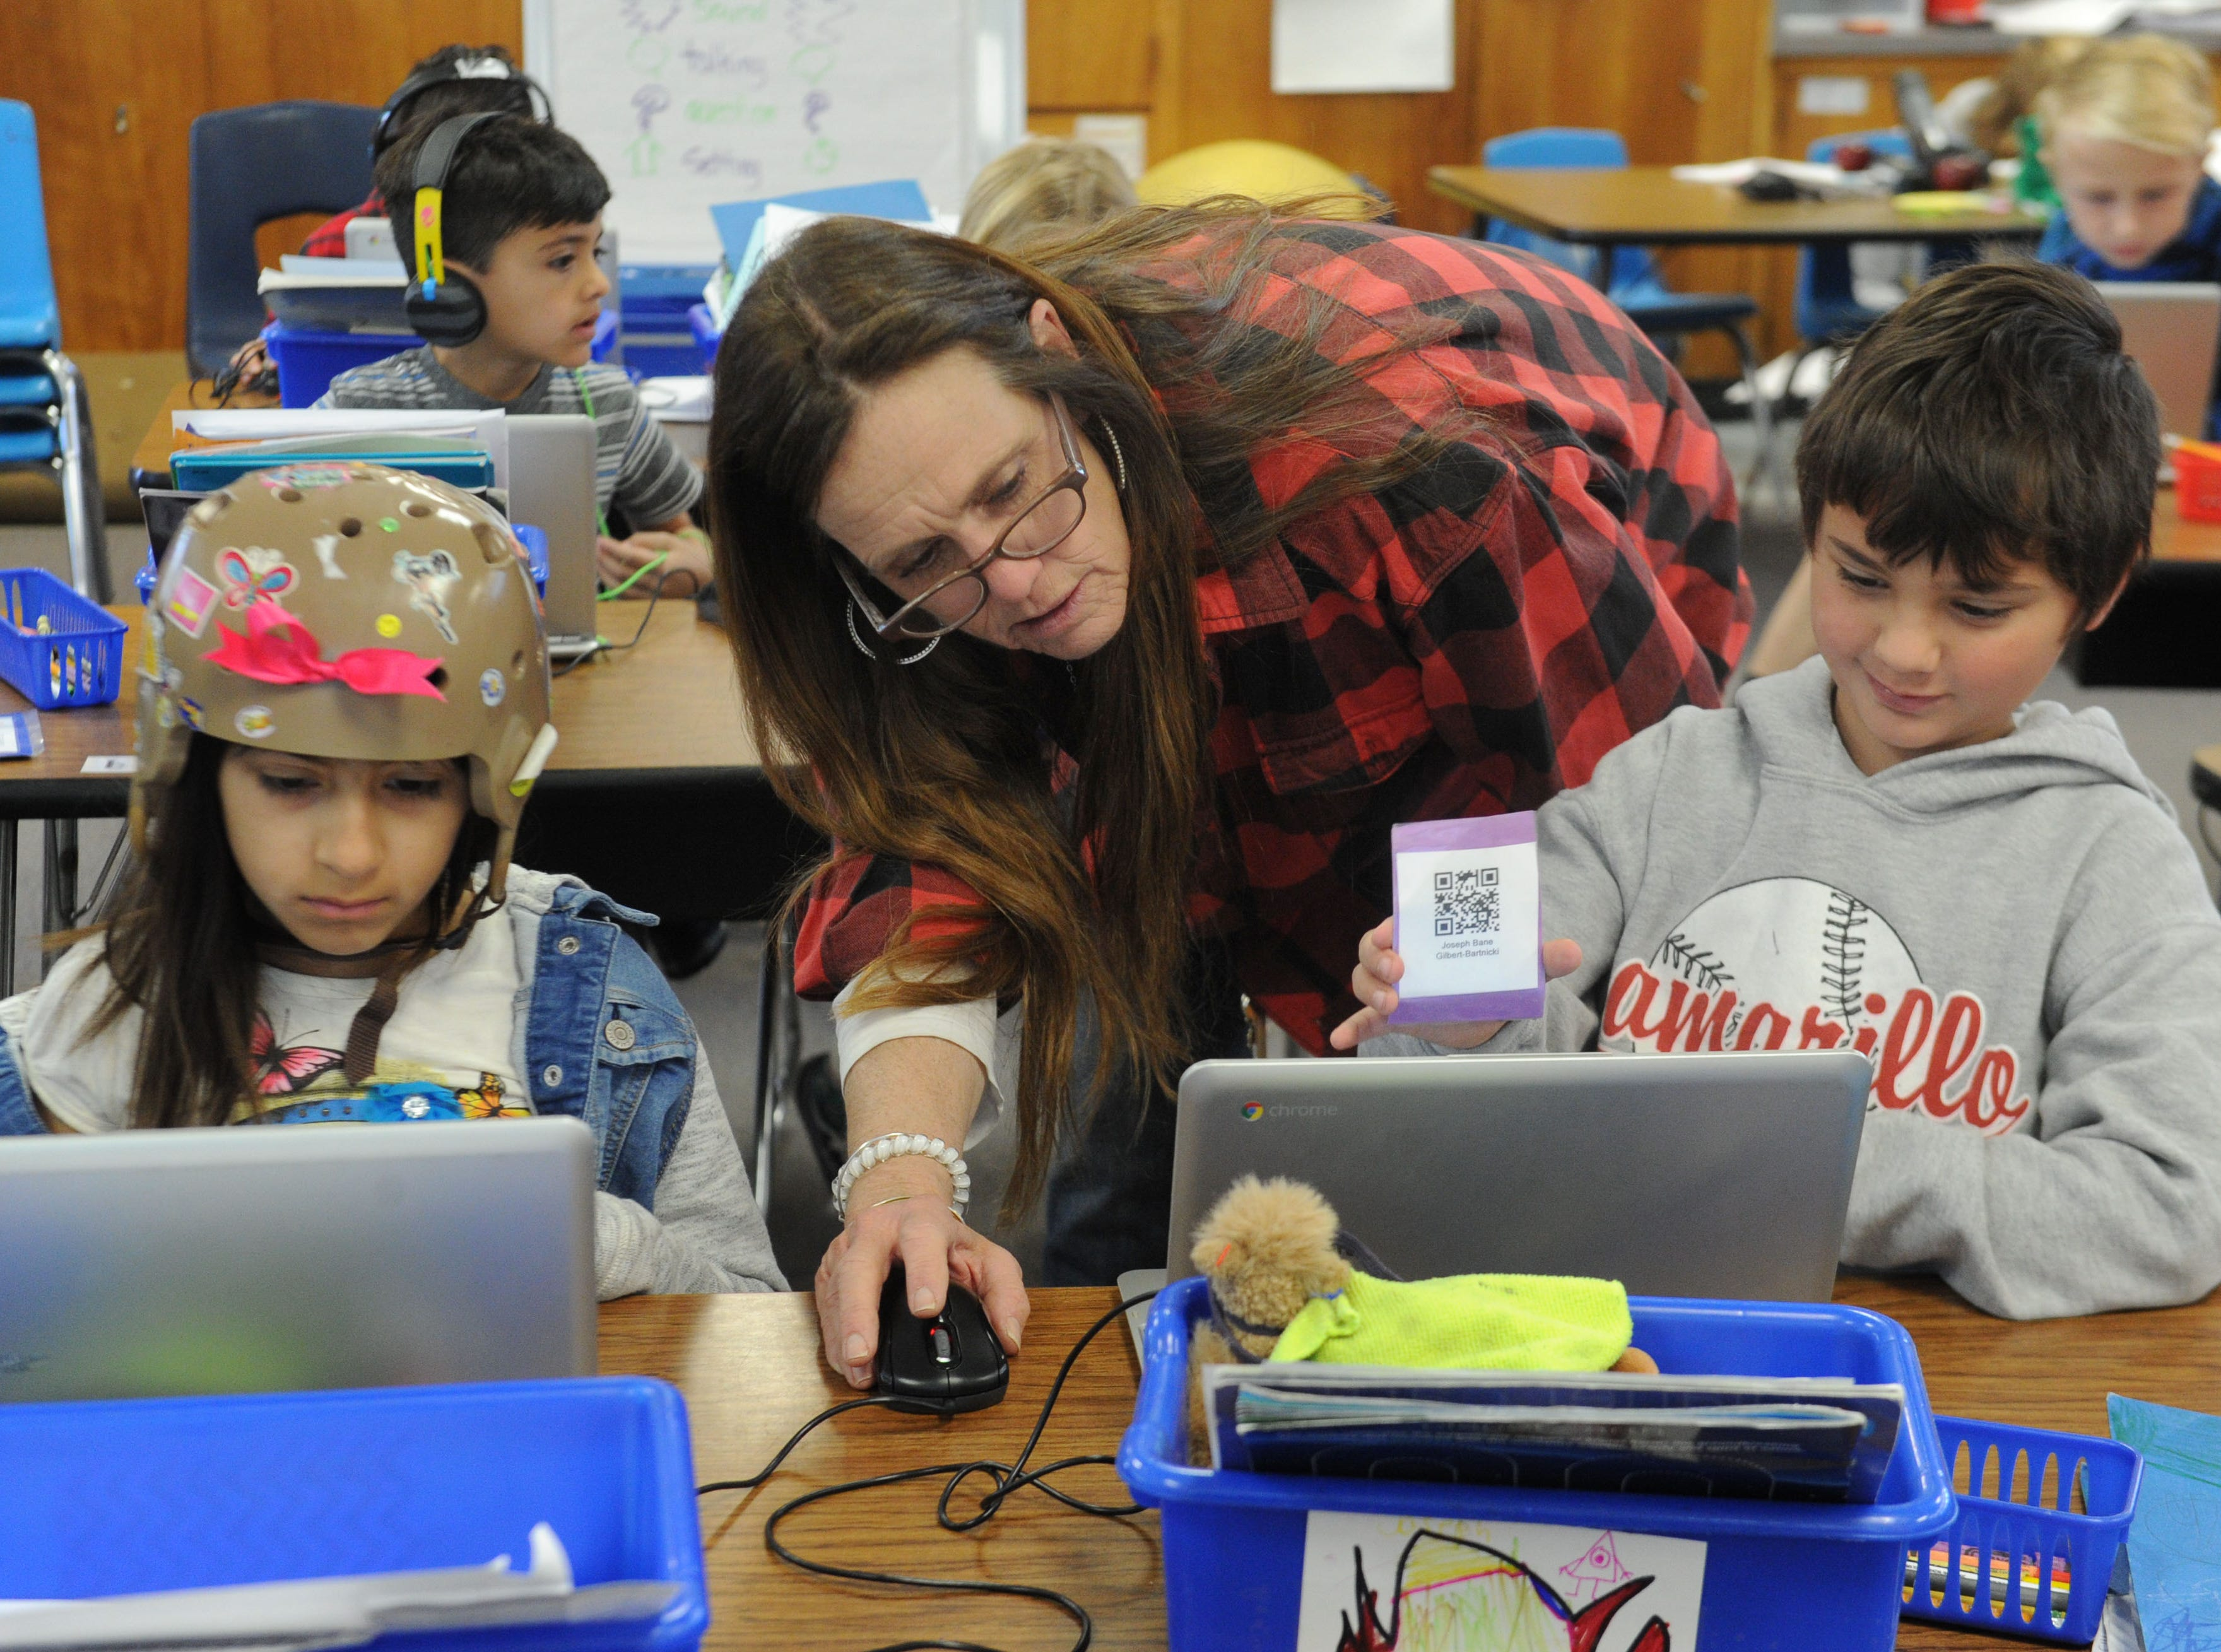 Roxi Arroyo, left, works on her math as second-grade teacher Jodi Atkinson works with Joseph Bartnicki at Camarillo Heights School. Atkinson also was a student at Camarillo Heights. The school is the oldest operating school that has always been part of the Pleasant Valley School District, which is celebrating its 150th birthday this year.